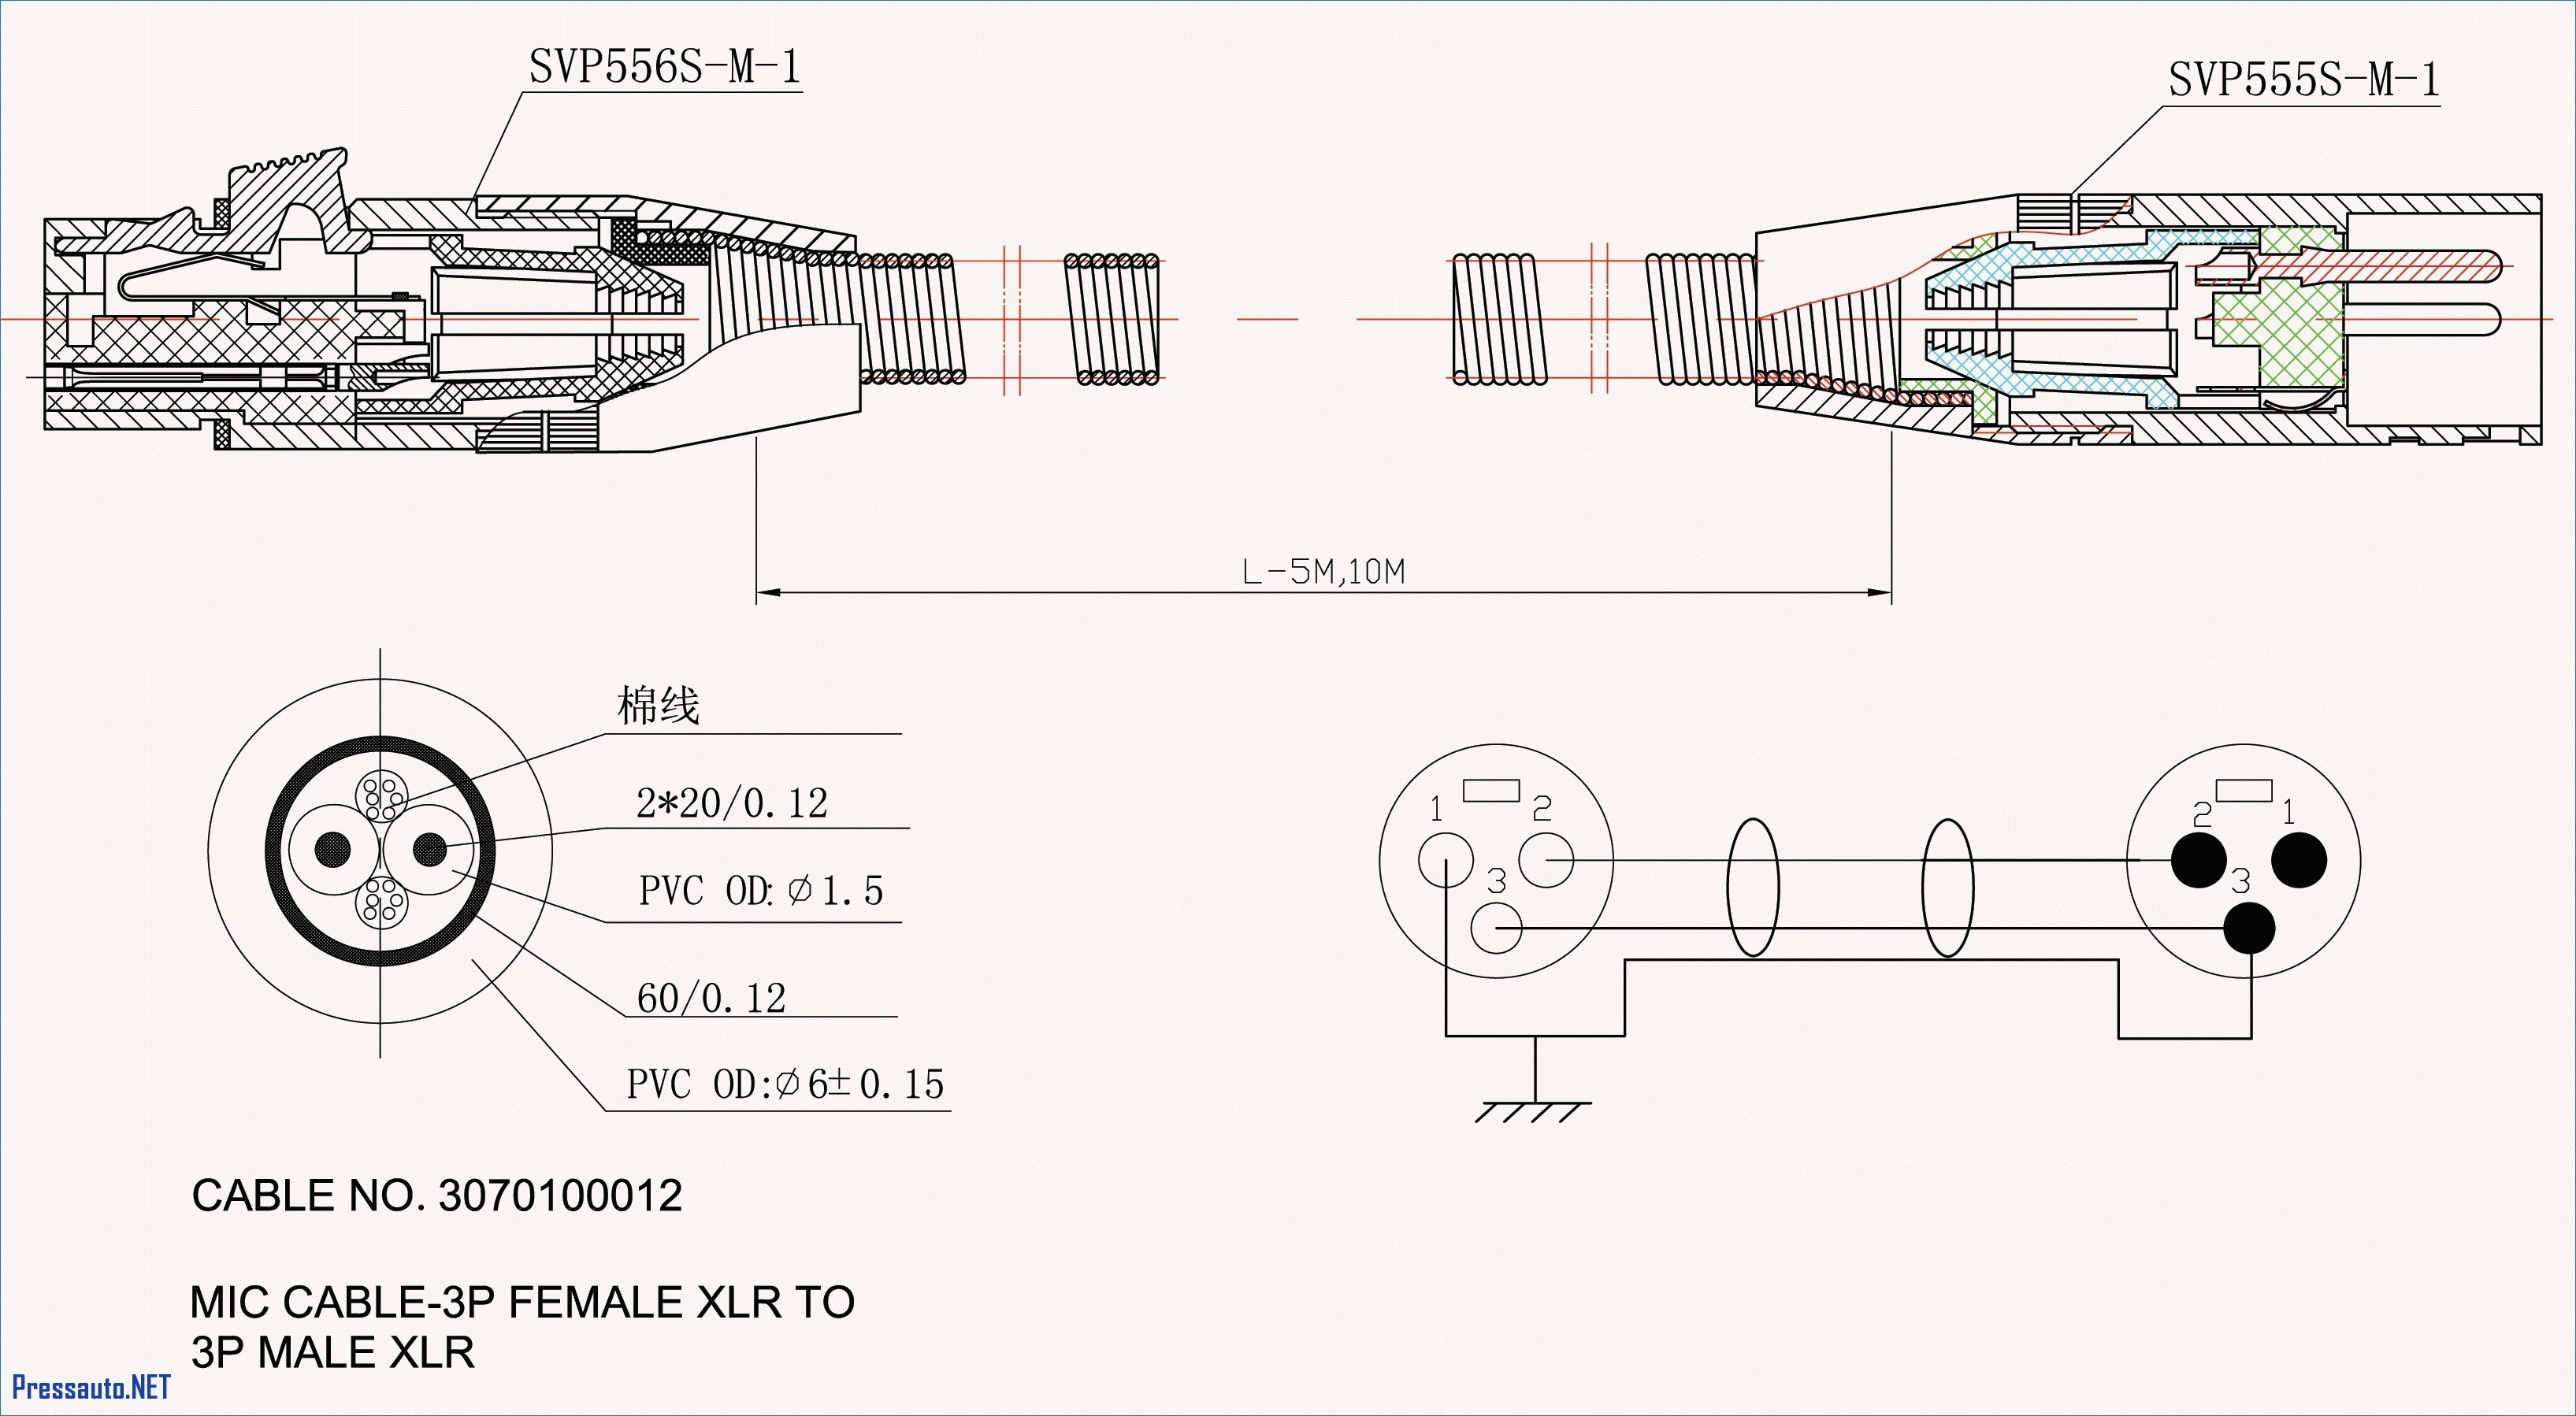 Wiring Diagram for Electric Brakes Valid Wiring Diagram Trailer Brakes New Electric Brake Wiring Diagram